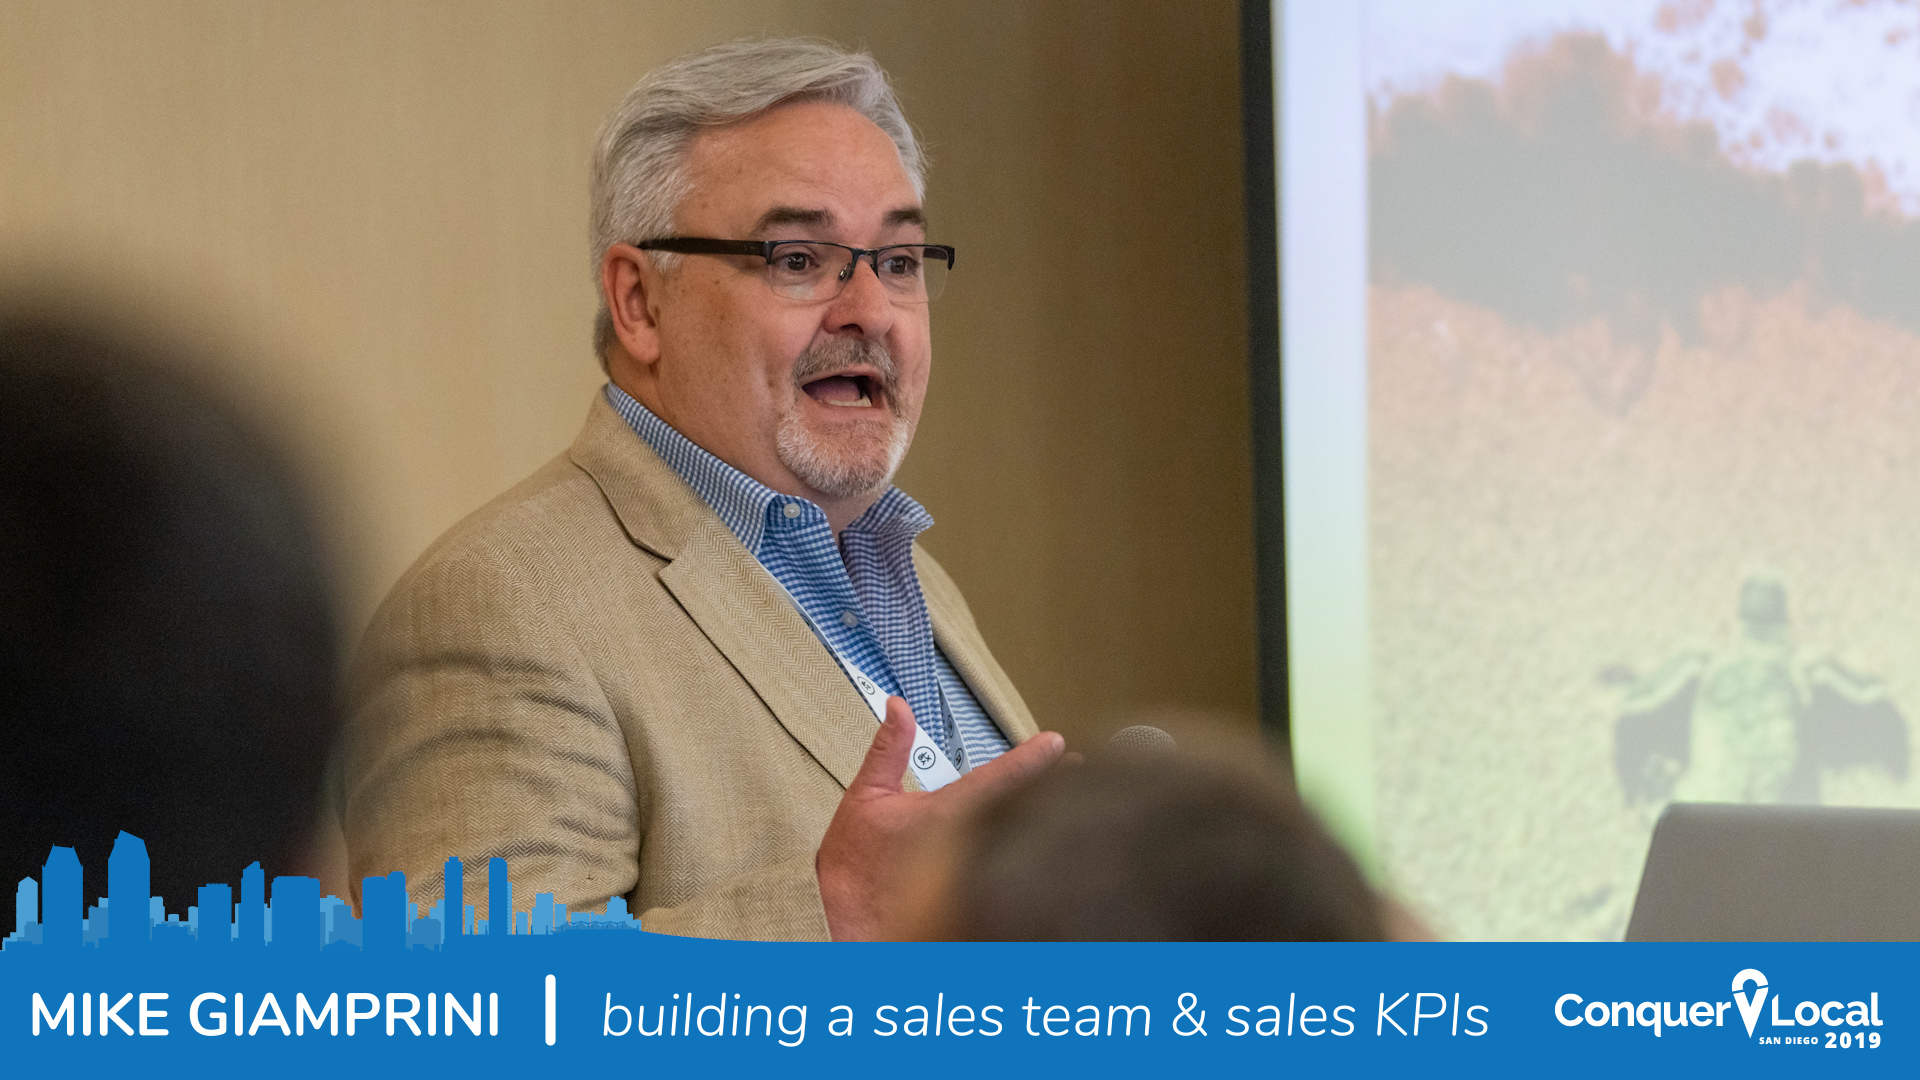 Mike Giamprini | Building a sales team & sales KPIs